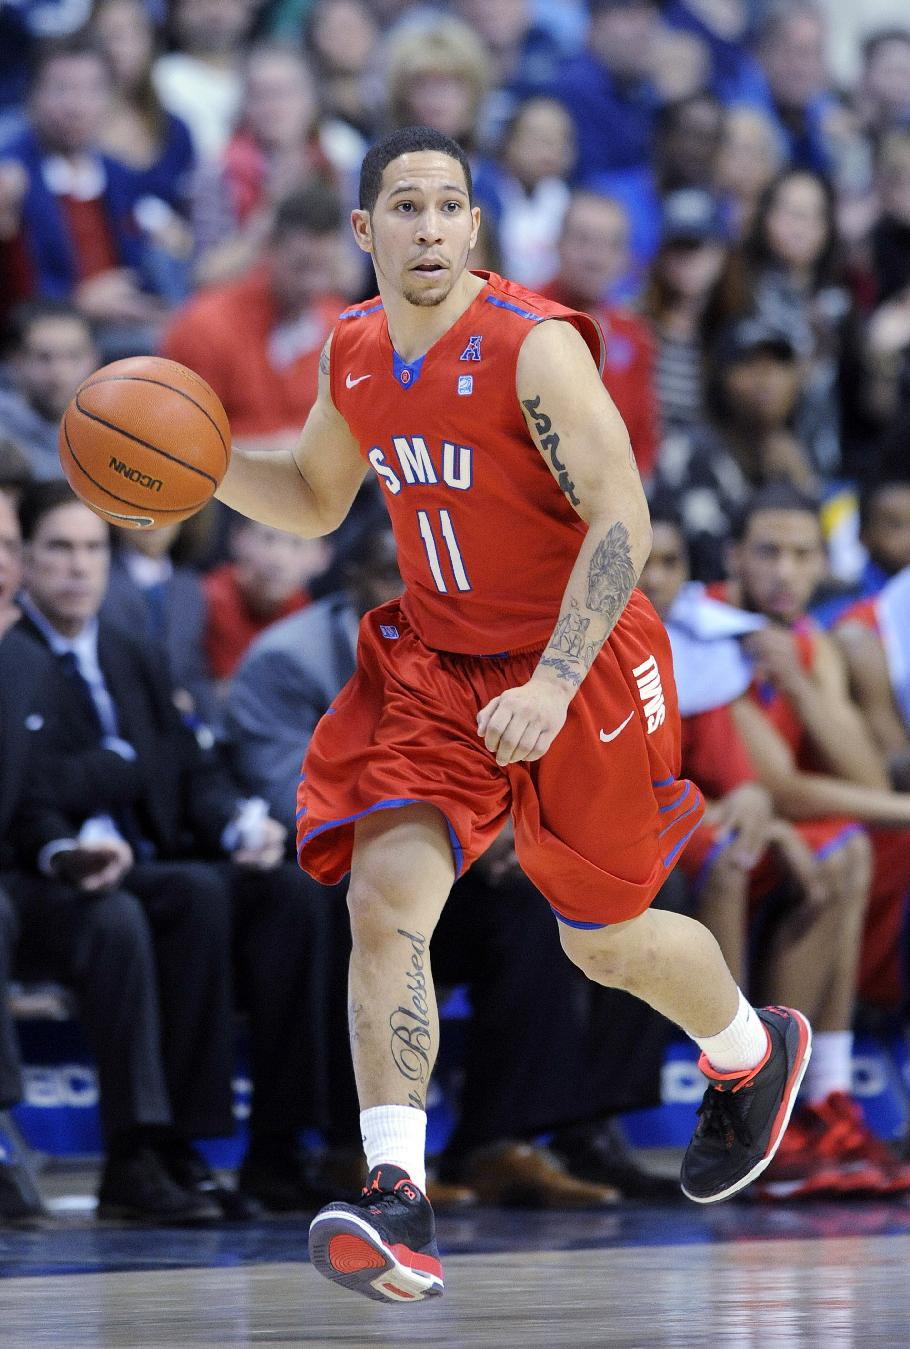 SMU's Nic Moore (11) runs the court during the second half of his team's 64-55 victory over Connecticut in an NCAA college basketball game in Storrs, Conn., Sunday, Feb. 23, 2014